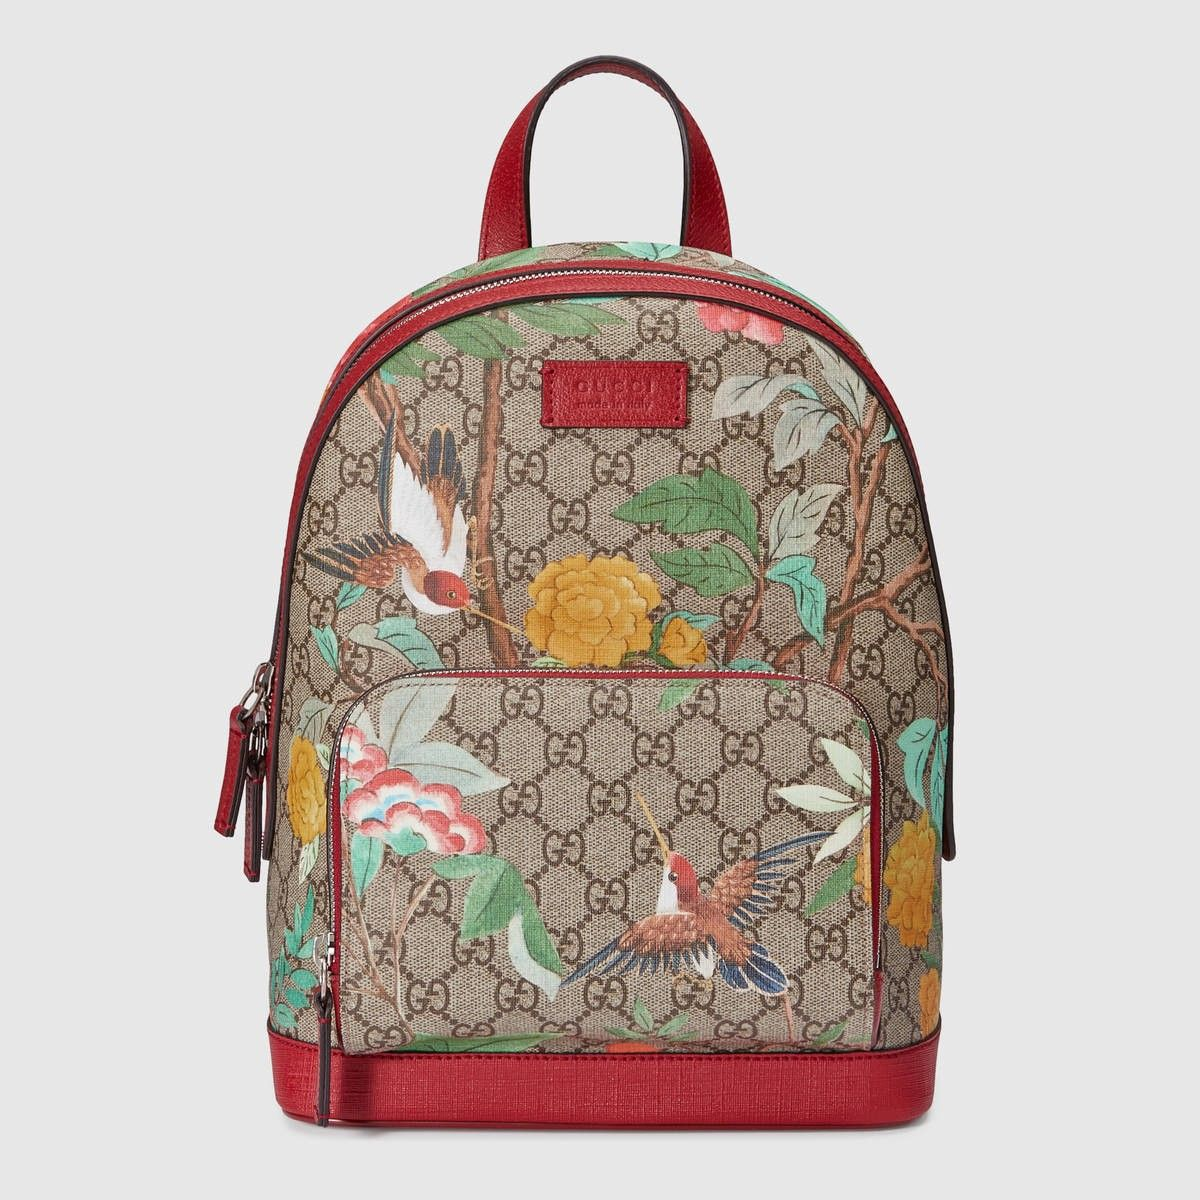 9750b830c8a GUCCI Gucci Tian Gg Supreme Backpack - Gg Supreme.  gucci  bags  leather   canvas  backpacks